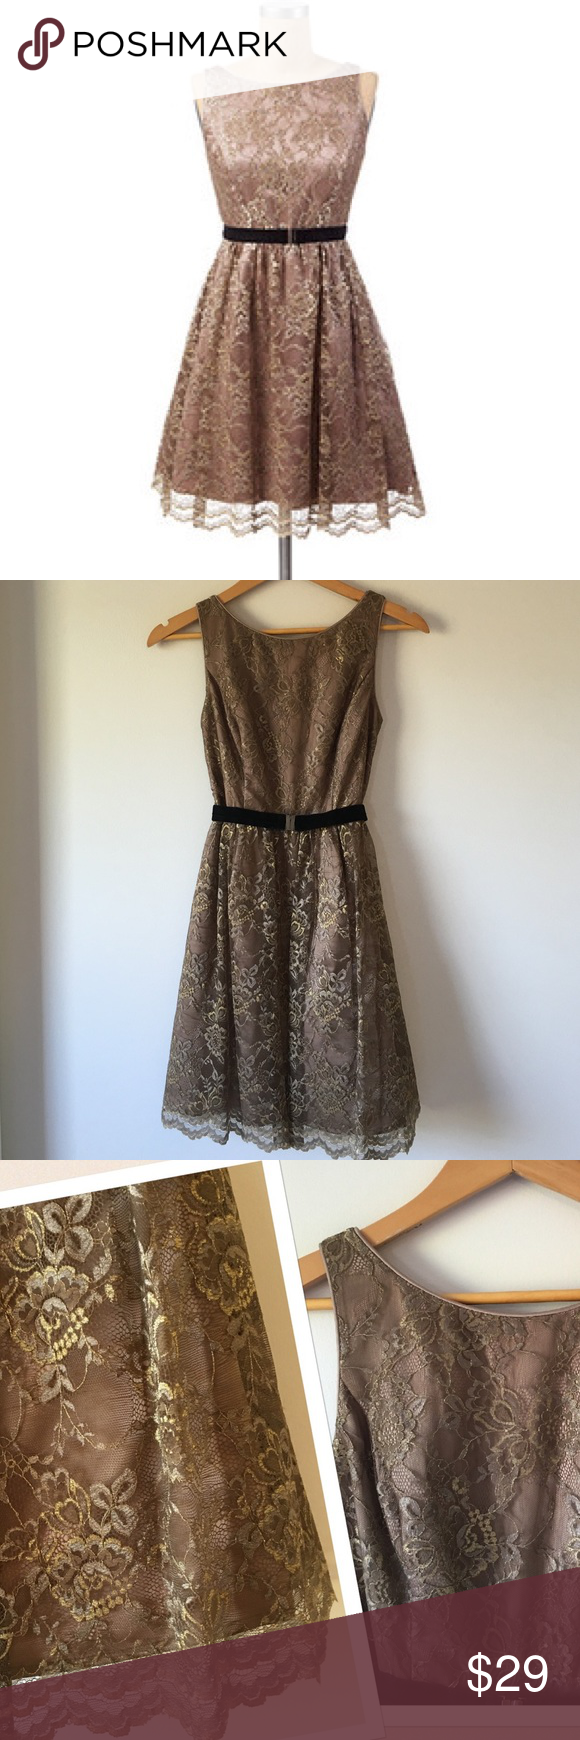 """{Jessica Simpson} Gold Lace Tank Dress Jessica Simpson sleeveless fit and flare lace dress. Color is taupe with gold and taupe lace overlay. High scoop neckline. Deep-V back with zipper and clasp. Black velvet belt. Fully lined with the addition of tulle on the bottom for volume. Bust is 16"""" flat across. Approximately 34"""" shoulder to bottom of hem. Excellent condition. Worn once. (4th photo shows dress in a different color on a model.) Jessica Simpson Dresses"""